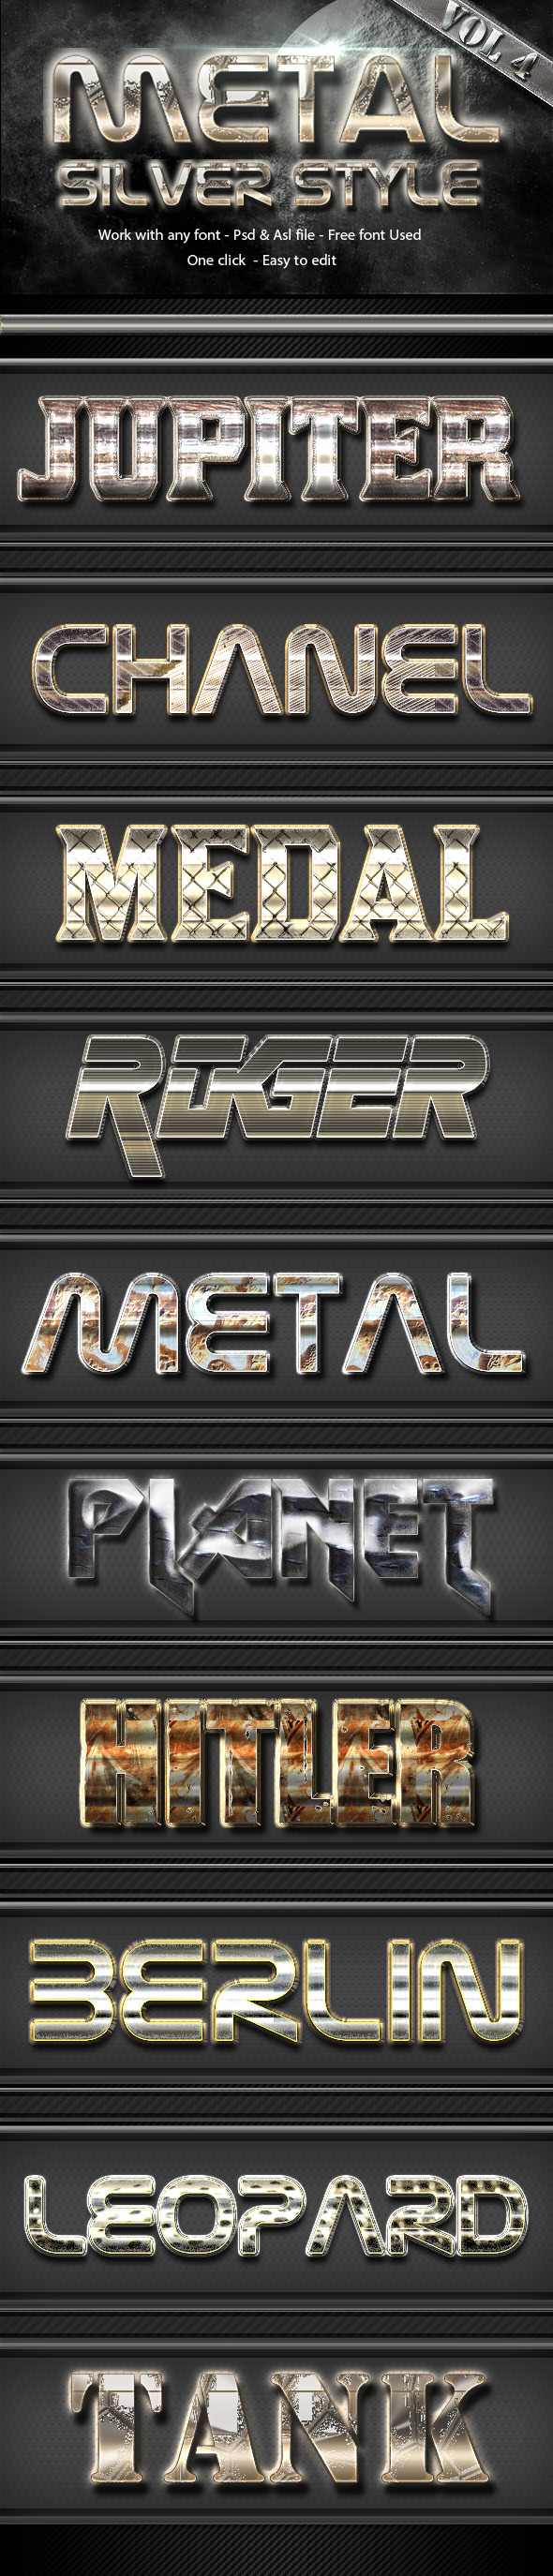 Metal Silver Text Effect Style Vol 4 - Text Effects Styles